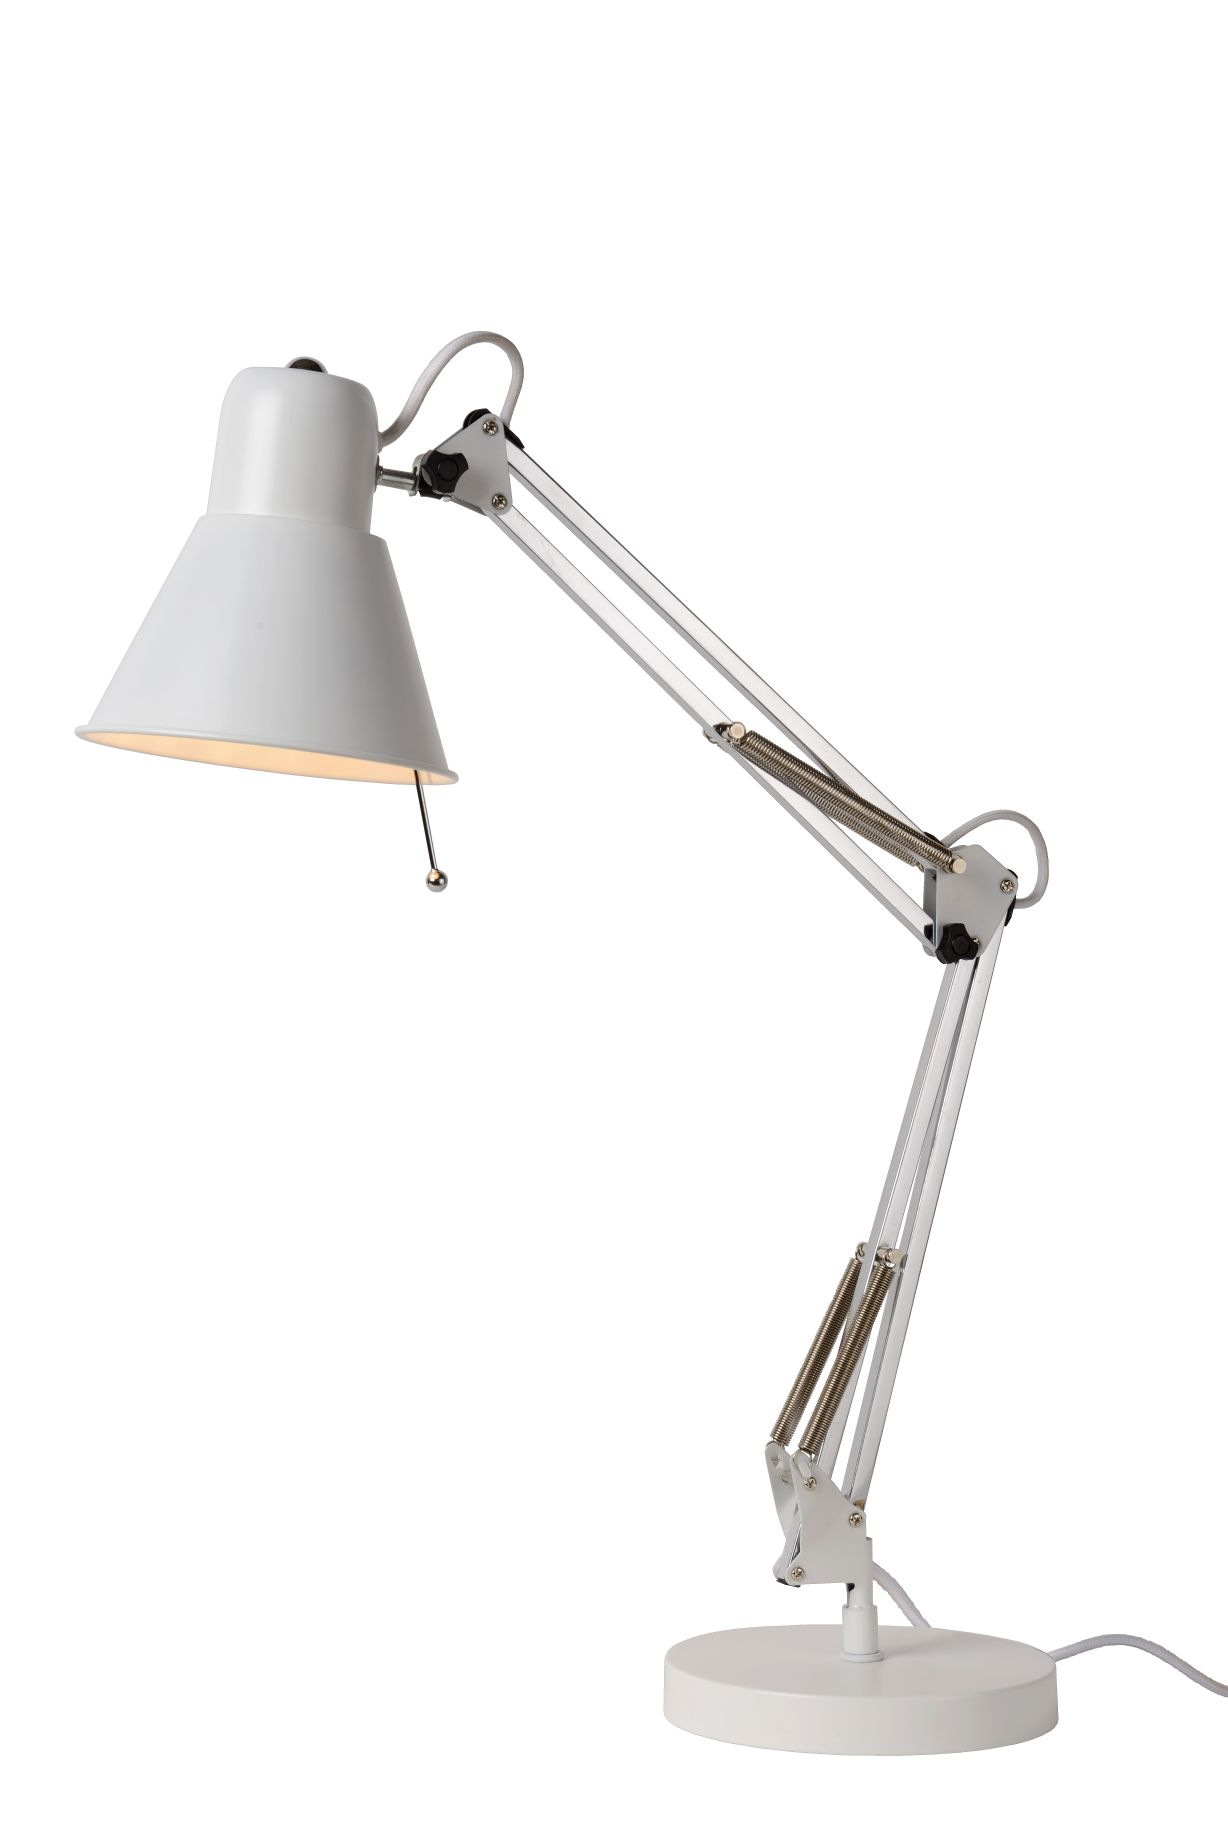 TERRA Desk lamp E27 L55 W18 H60cm White